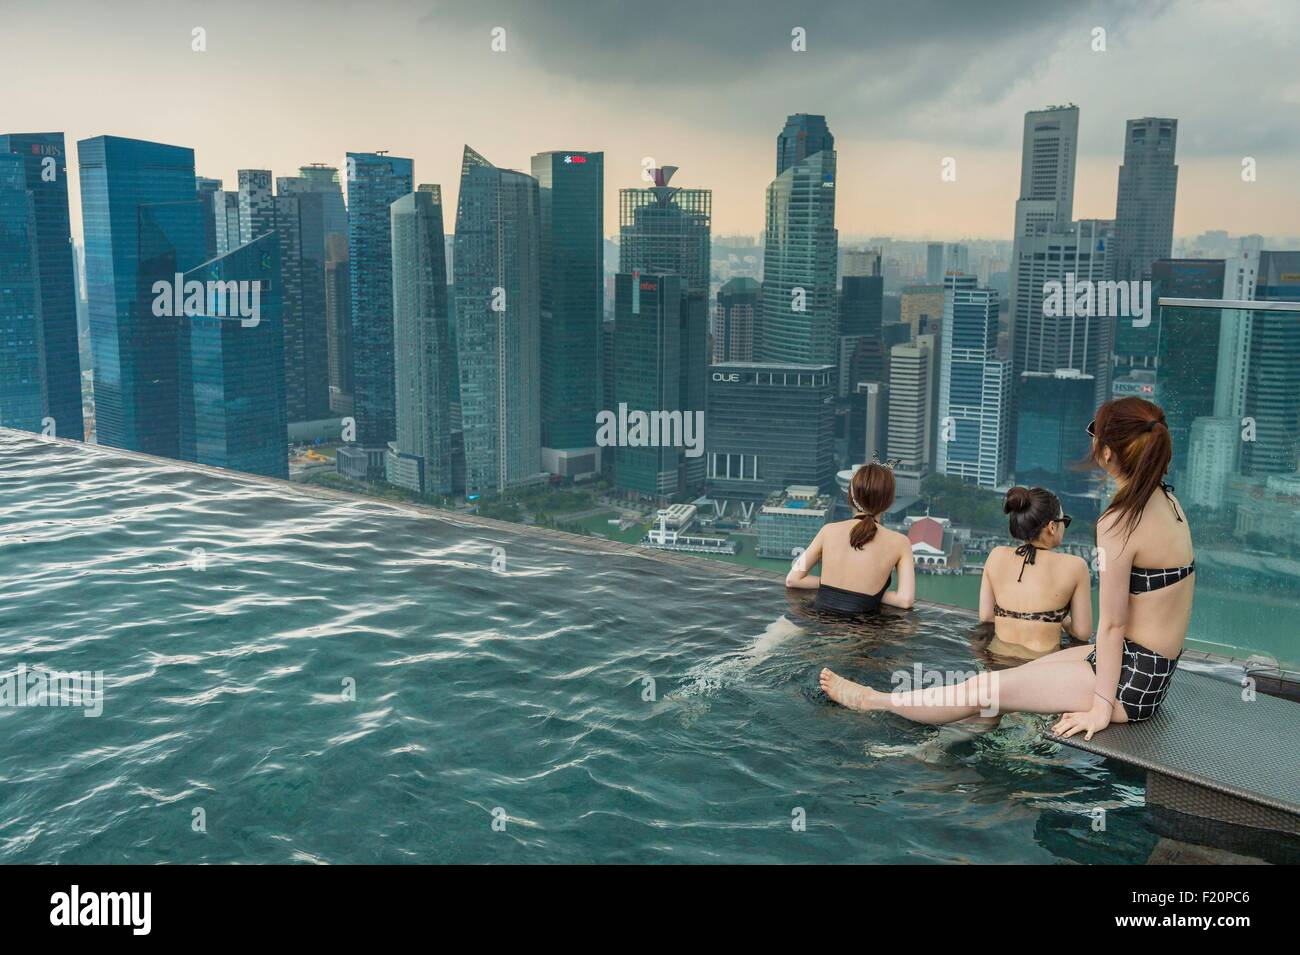 Singapore, Marina Bay, swimming-pool on the rooftop of Marina Bay Sands, luxuary hotel opened in 2010 - Stock Image